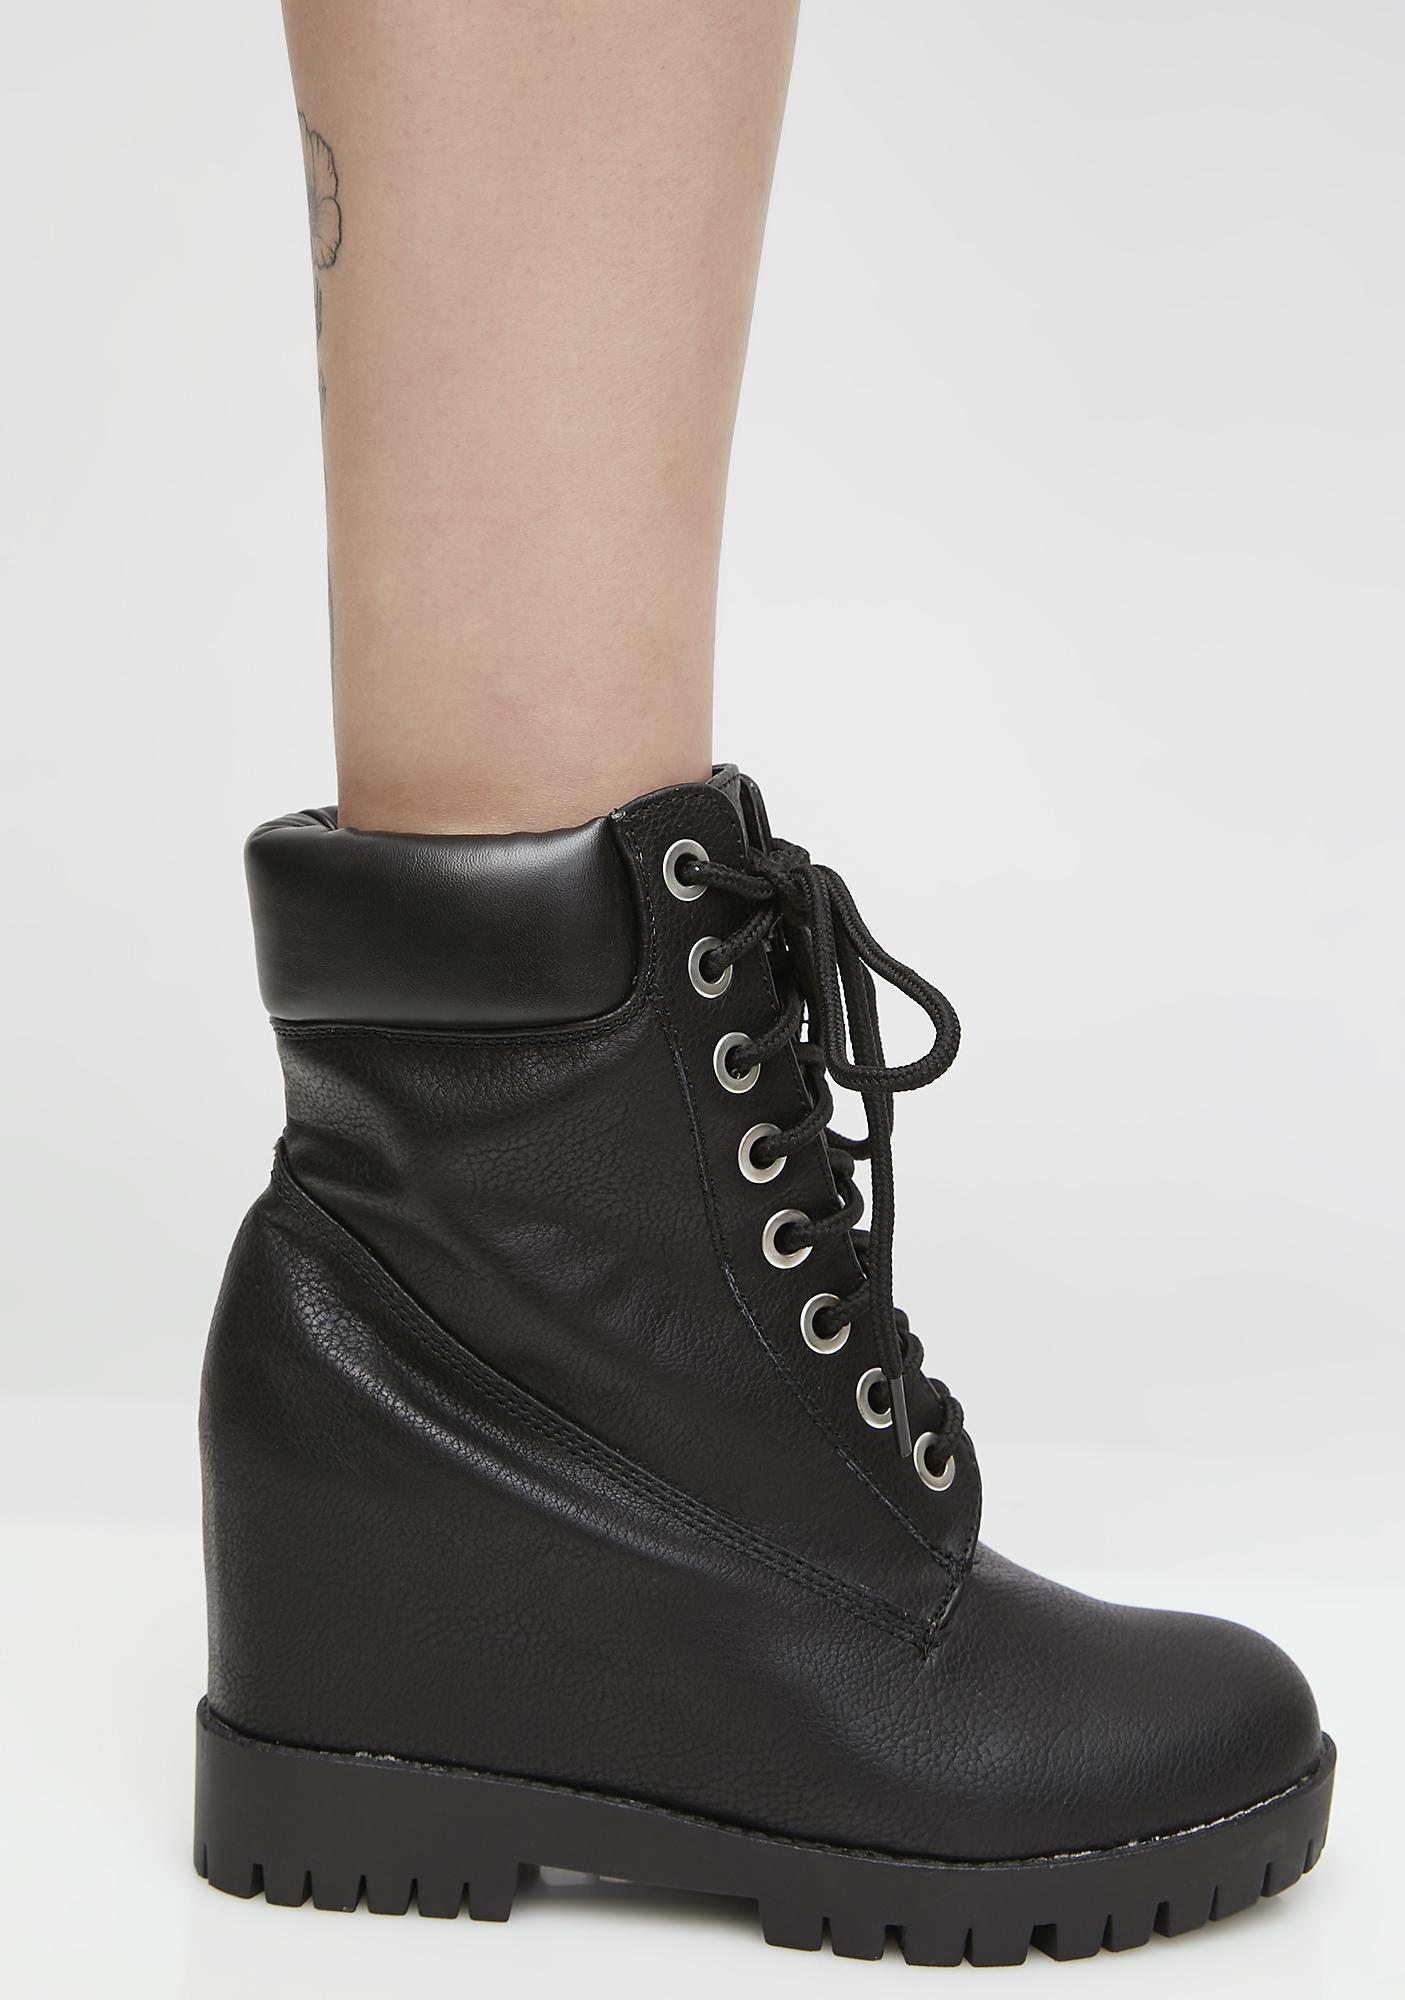 Take The Wheel Wedge Booties